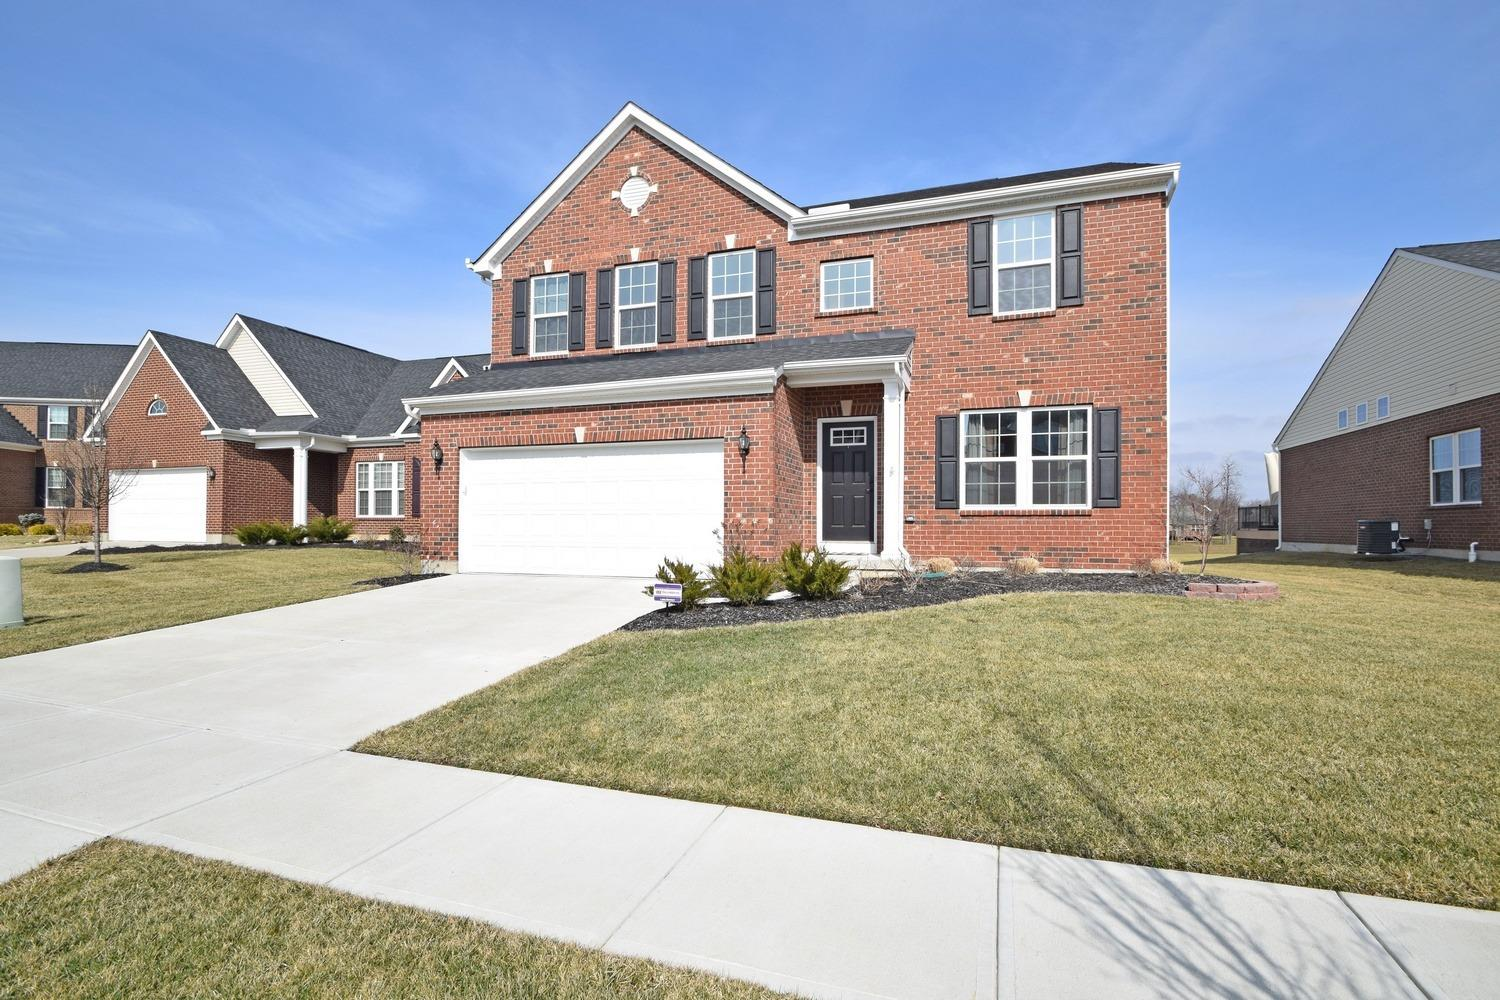 Property for sale at 6468 Holly Lane, Fairfield Twp,  Ohio 45011